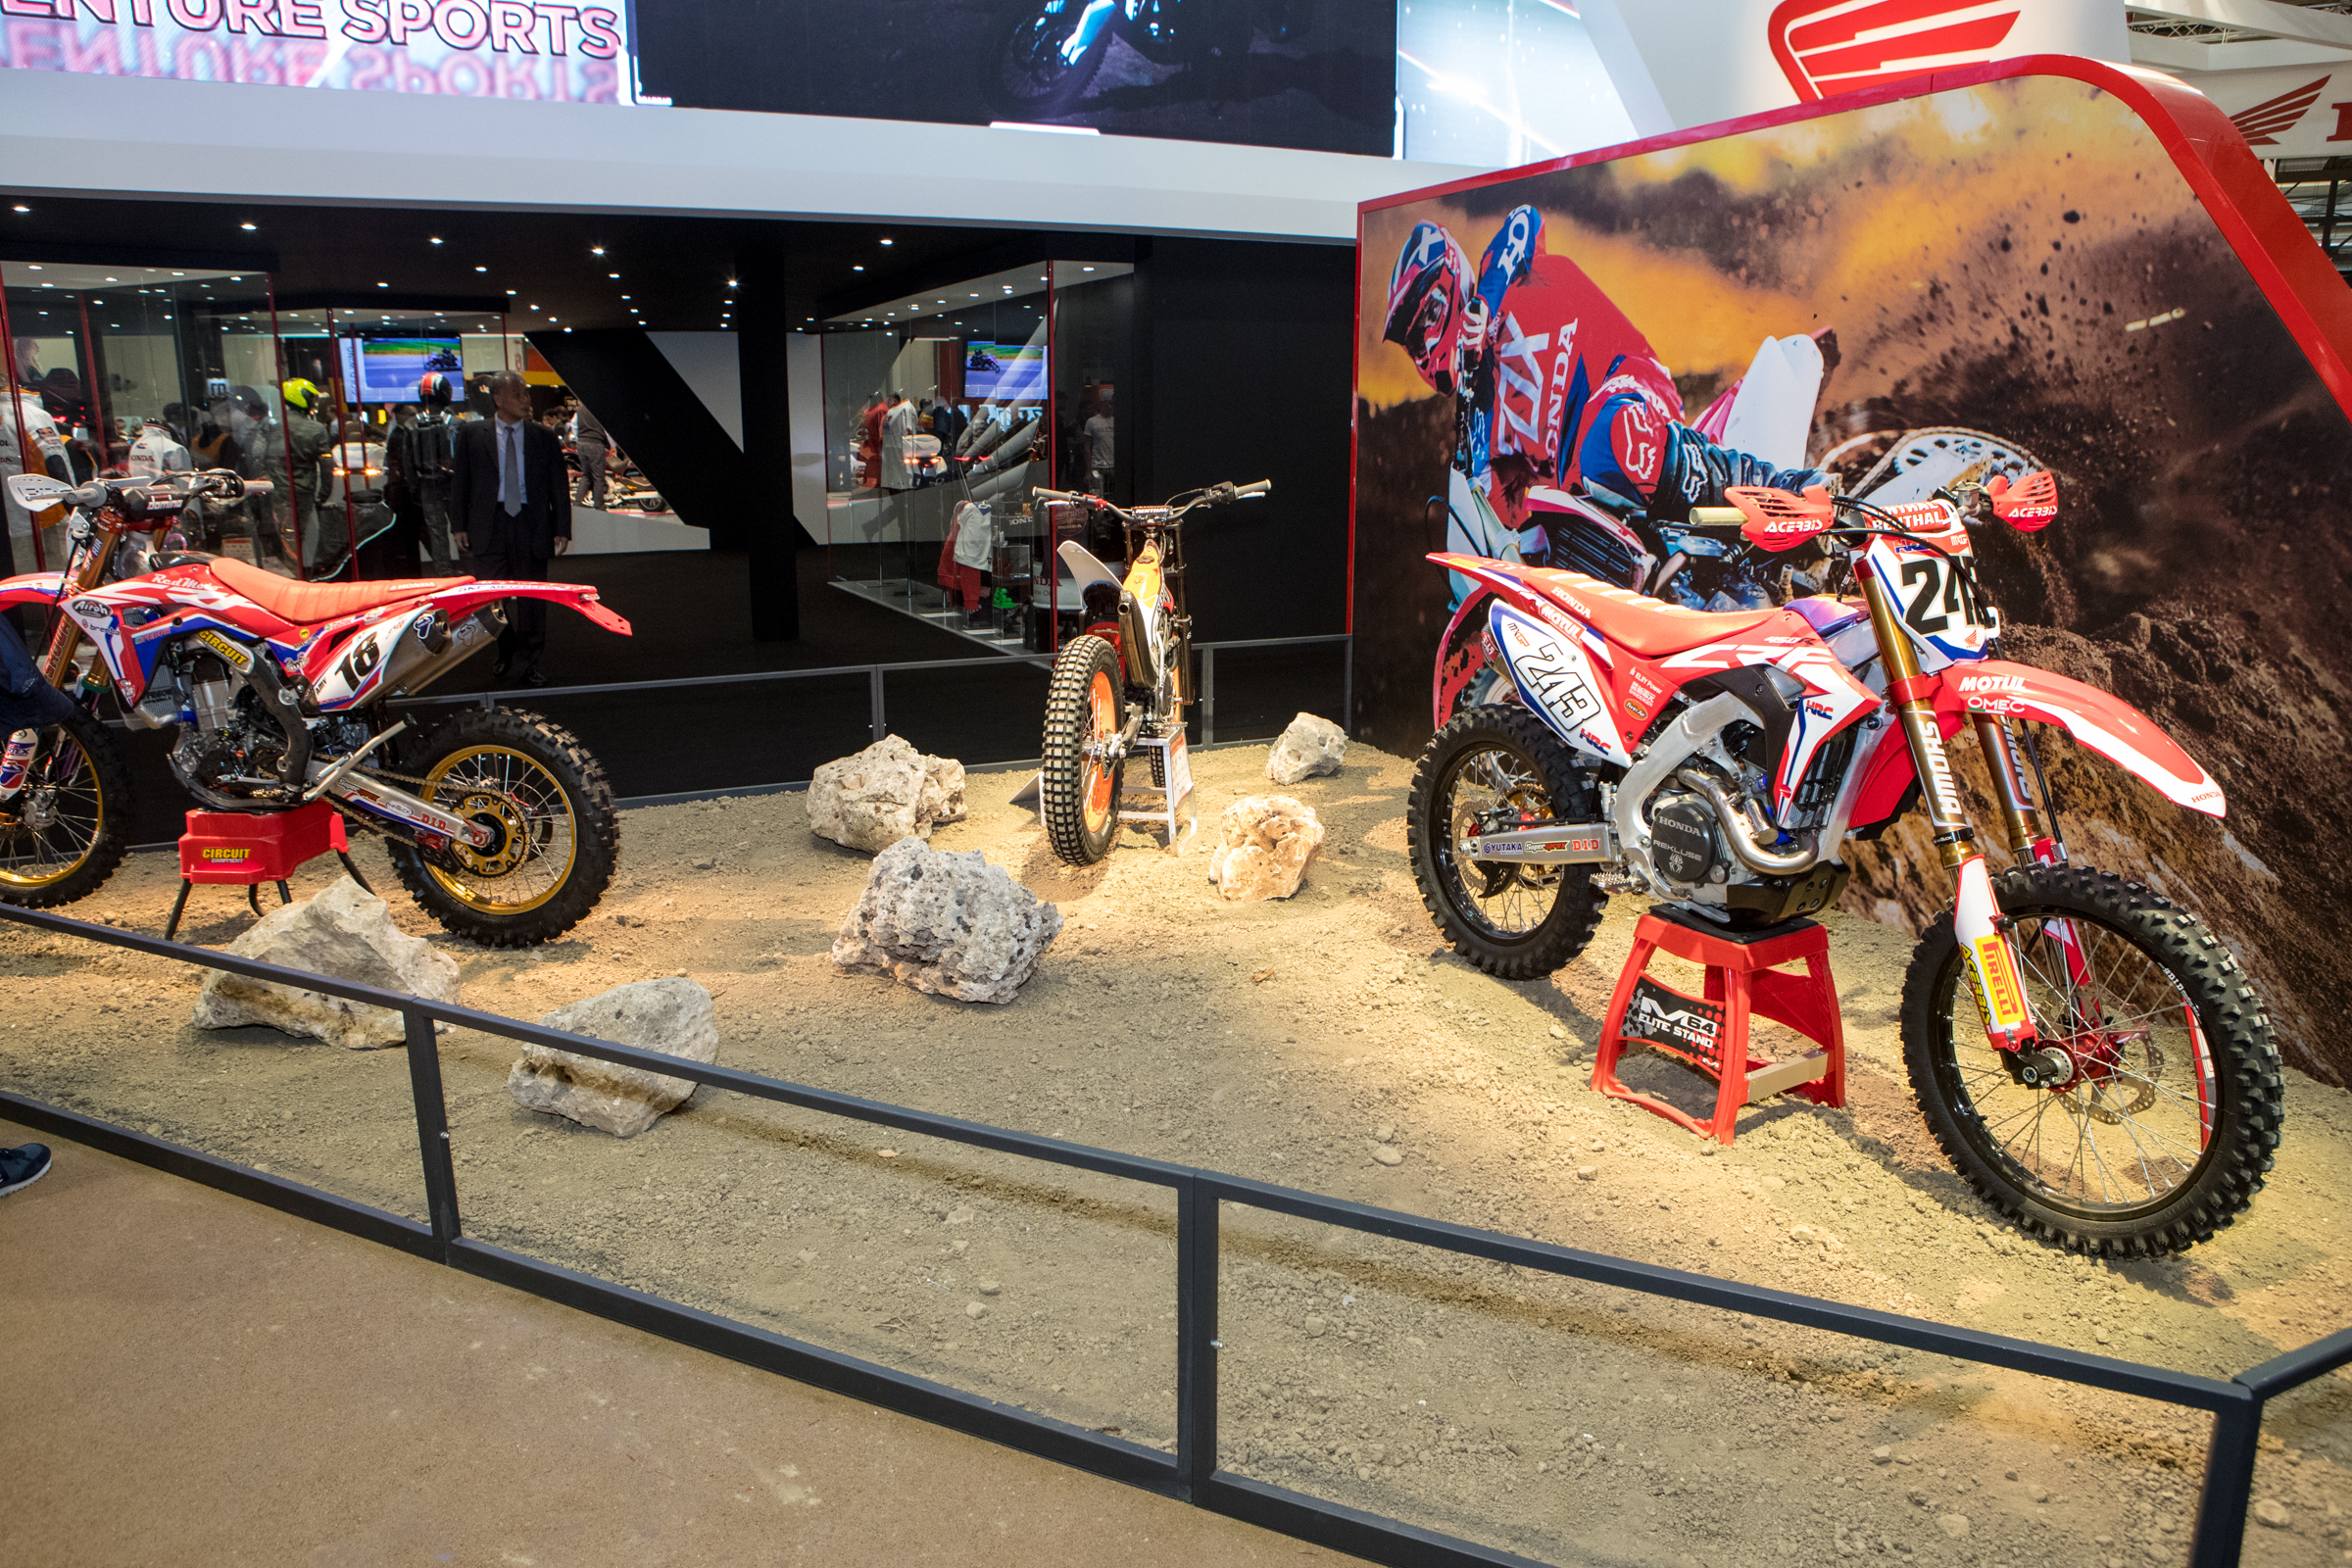 A peek at Honda's off-road range with Gajser's CRF450RW, their Montesa trials bike (piloted by Toni Bou) and an Enduro spec of the CRF450RX.